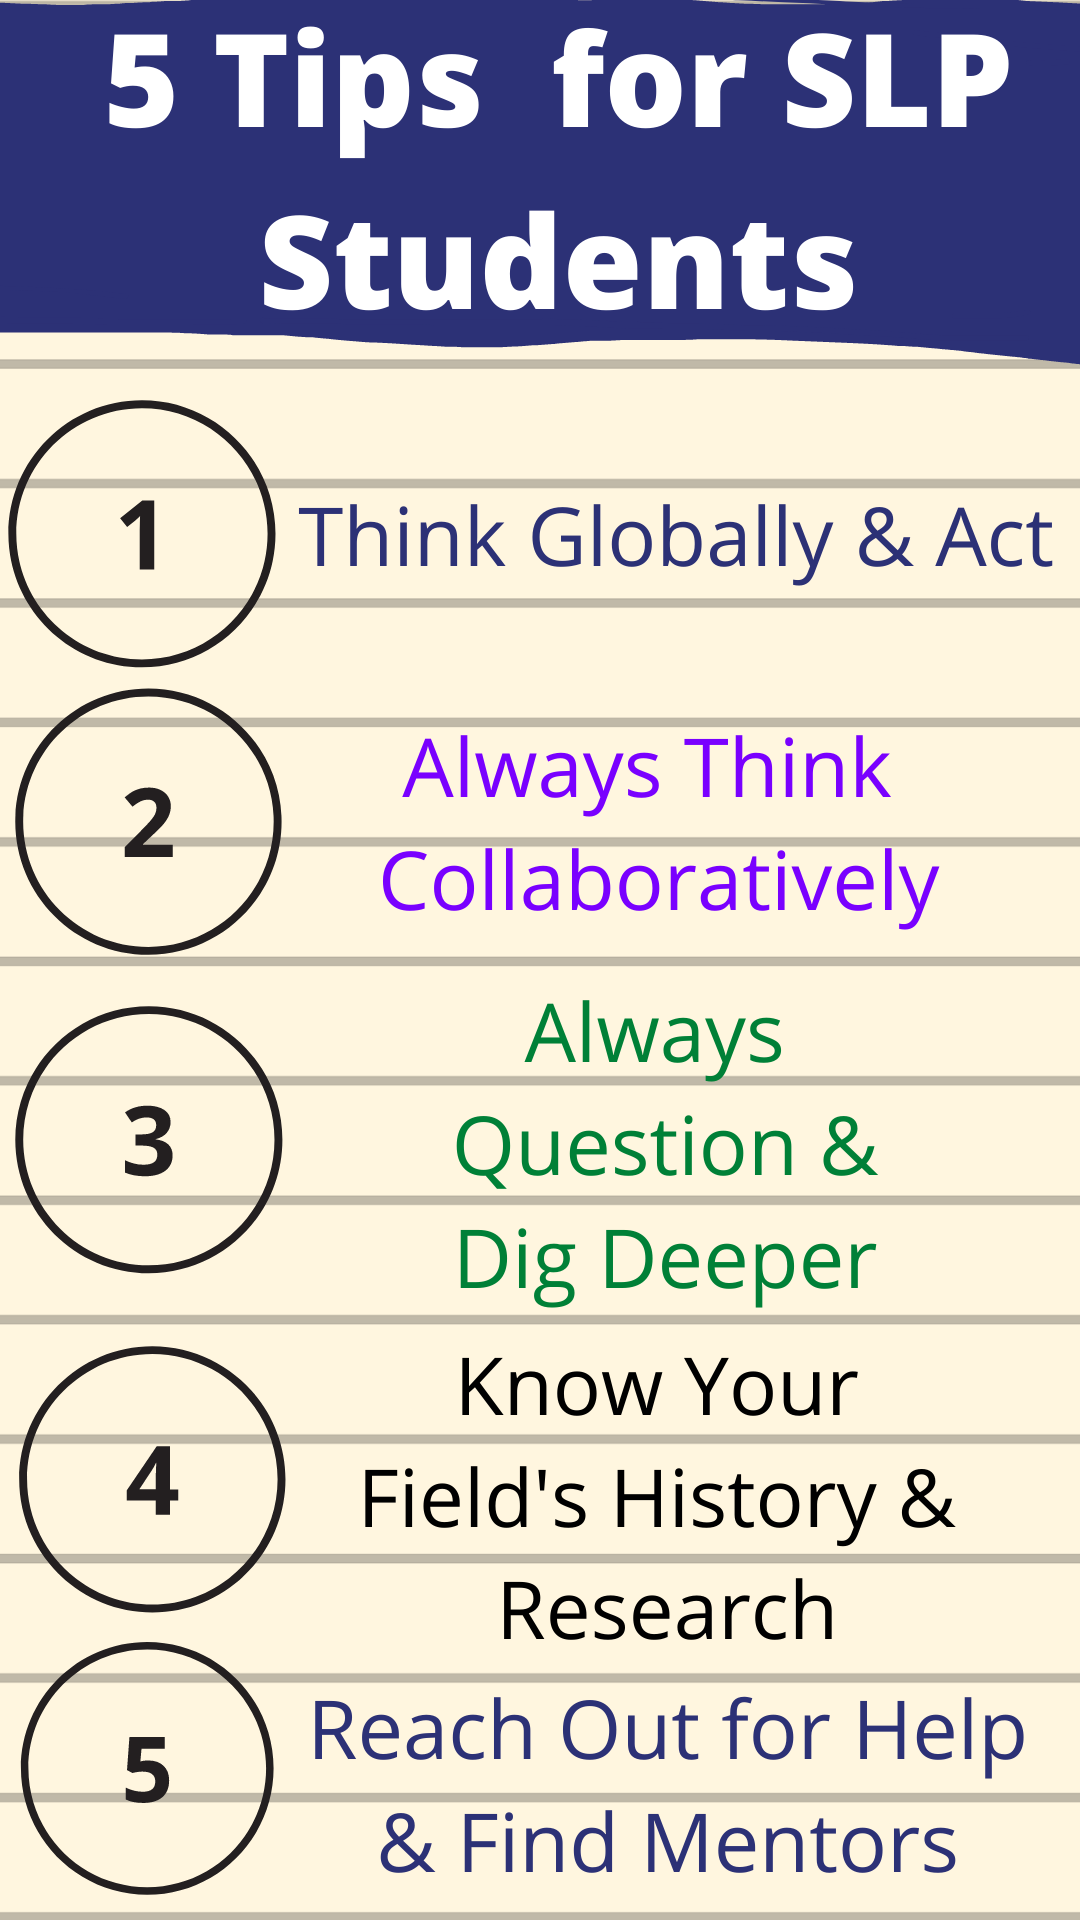 This image recommends 5 tips for students & new speech-language pathologists, such as: think globally & act, always think collaboratively, Always Question and Dig Deeper, Know your field's research & history, and Ask for help and seek out mentors. It is okay to not know it all.